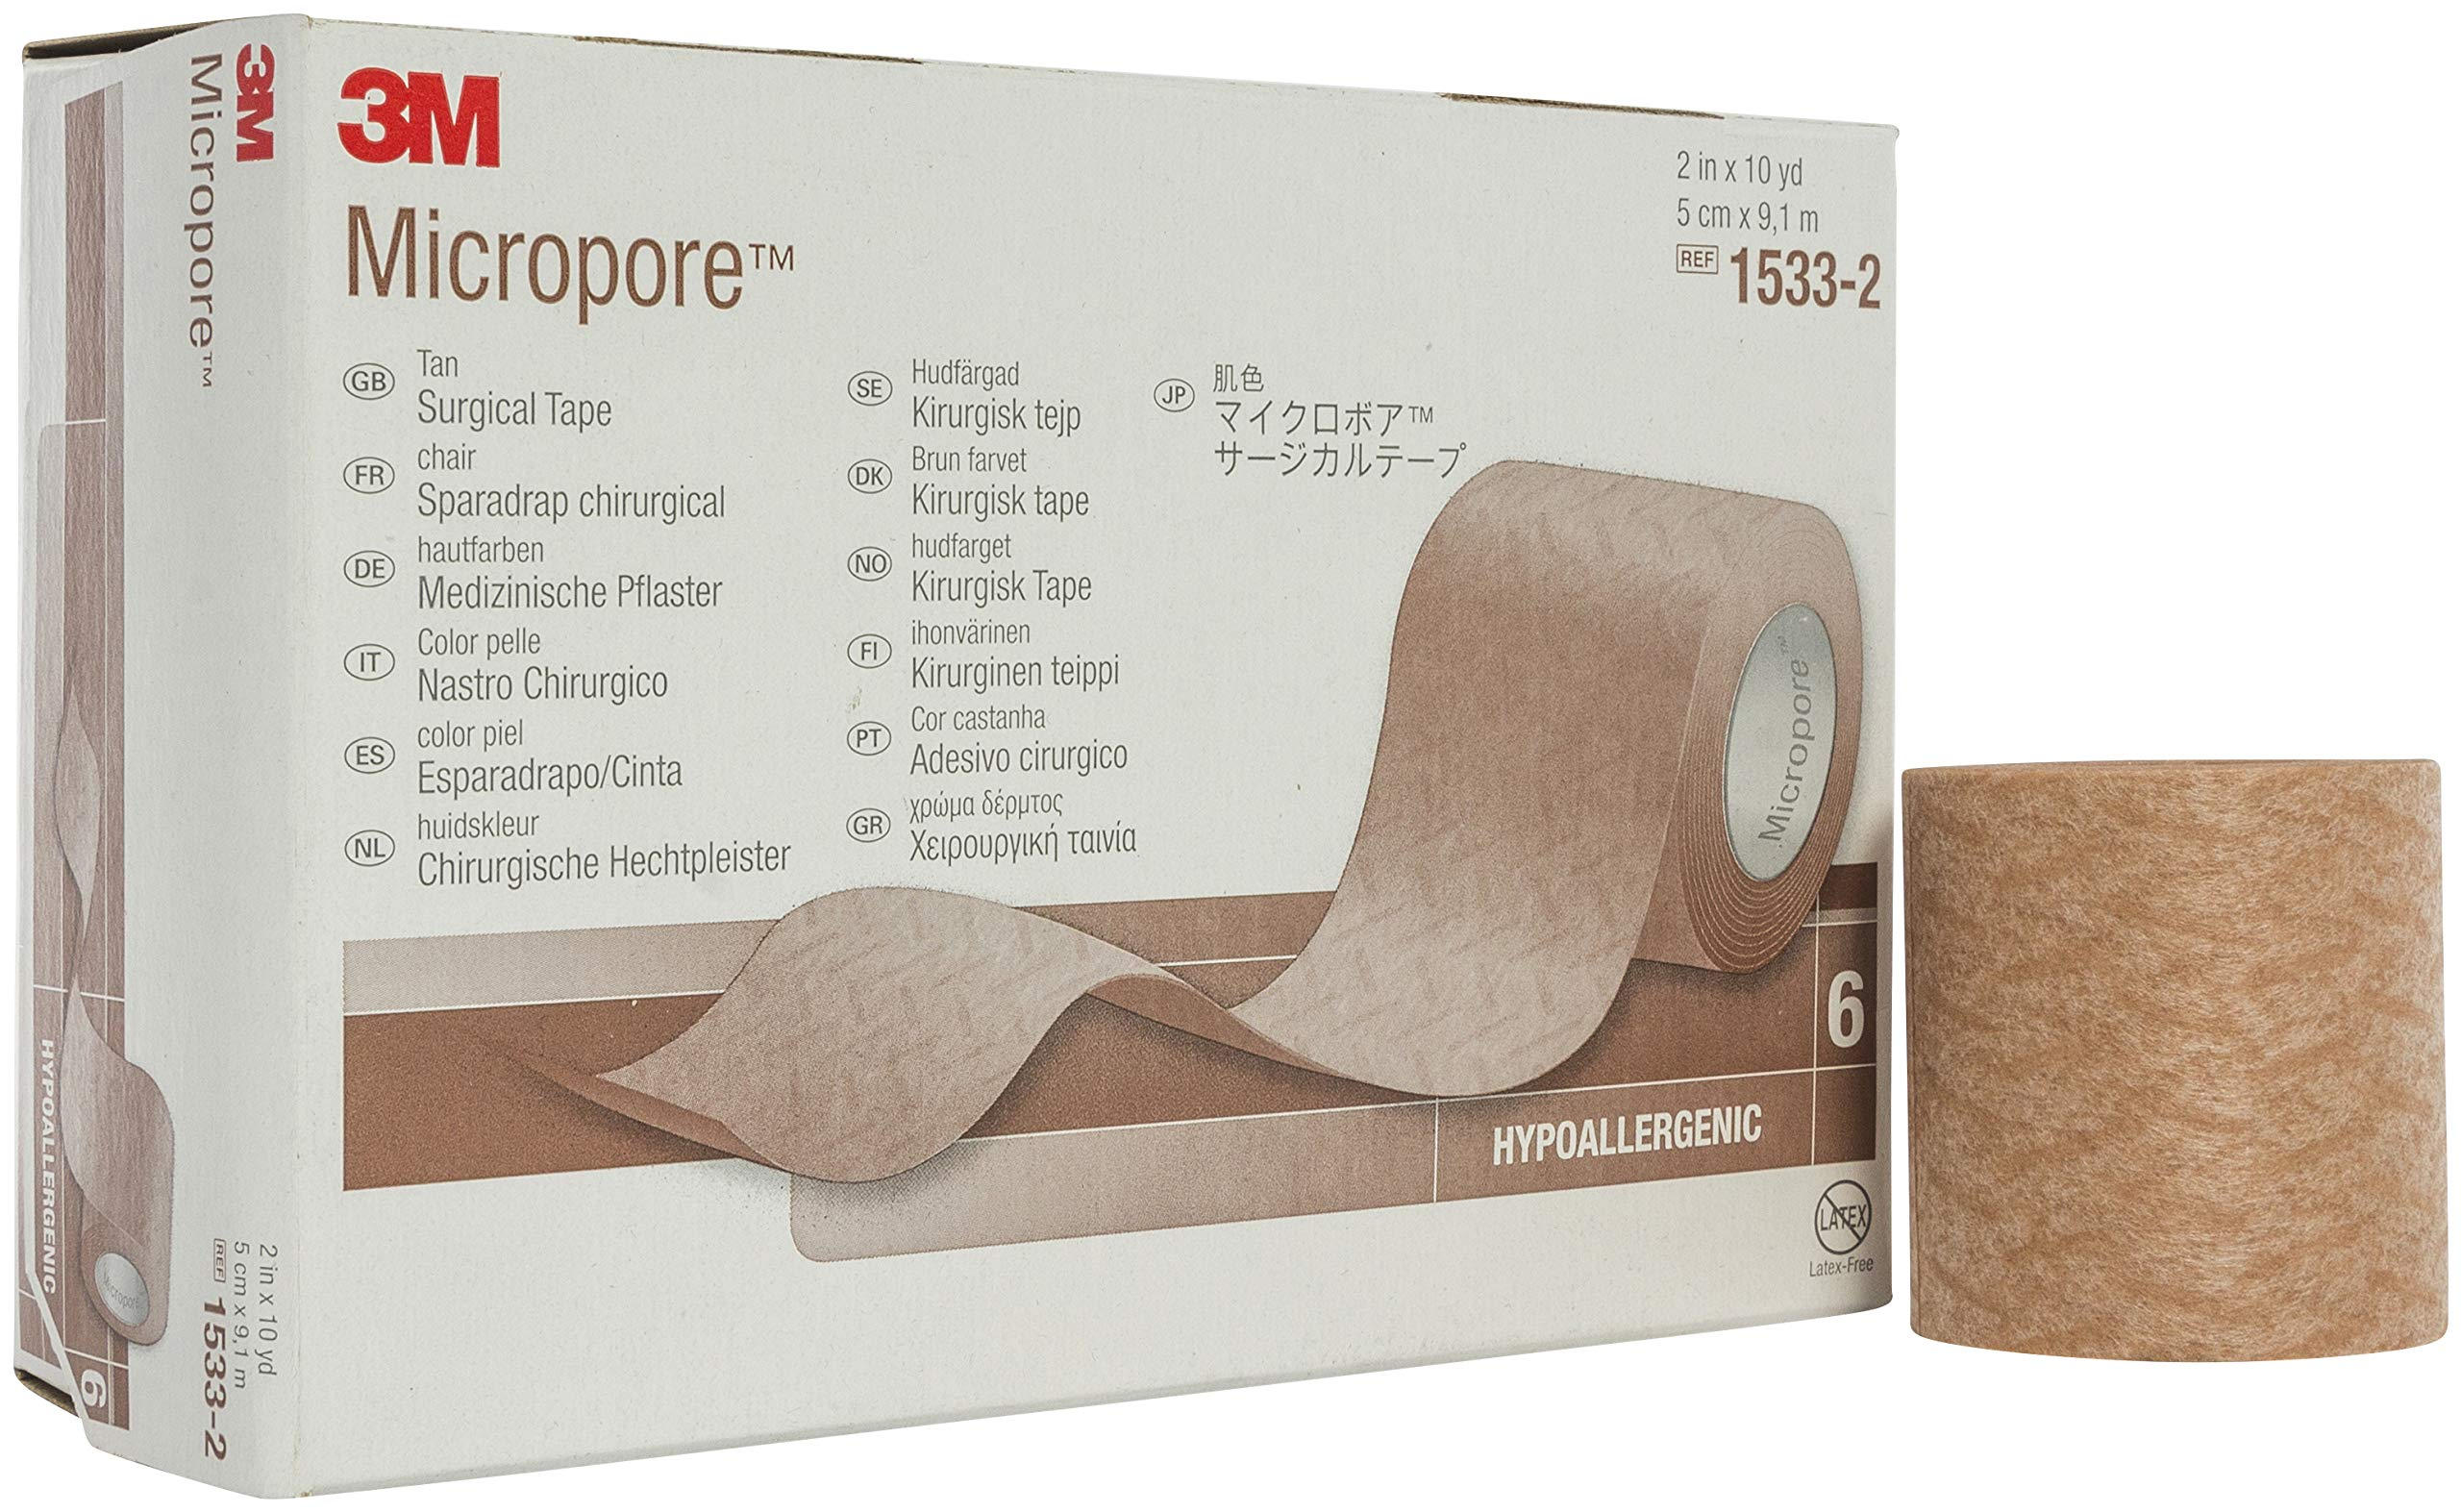 3M-1533-2 Tape Micropore Surgical LF Paper 2''x10yd Tan 6/Bx by 3M Part No. 1533-2